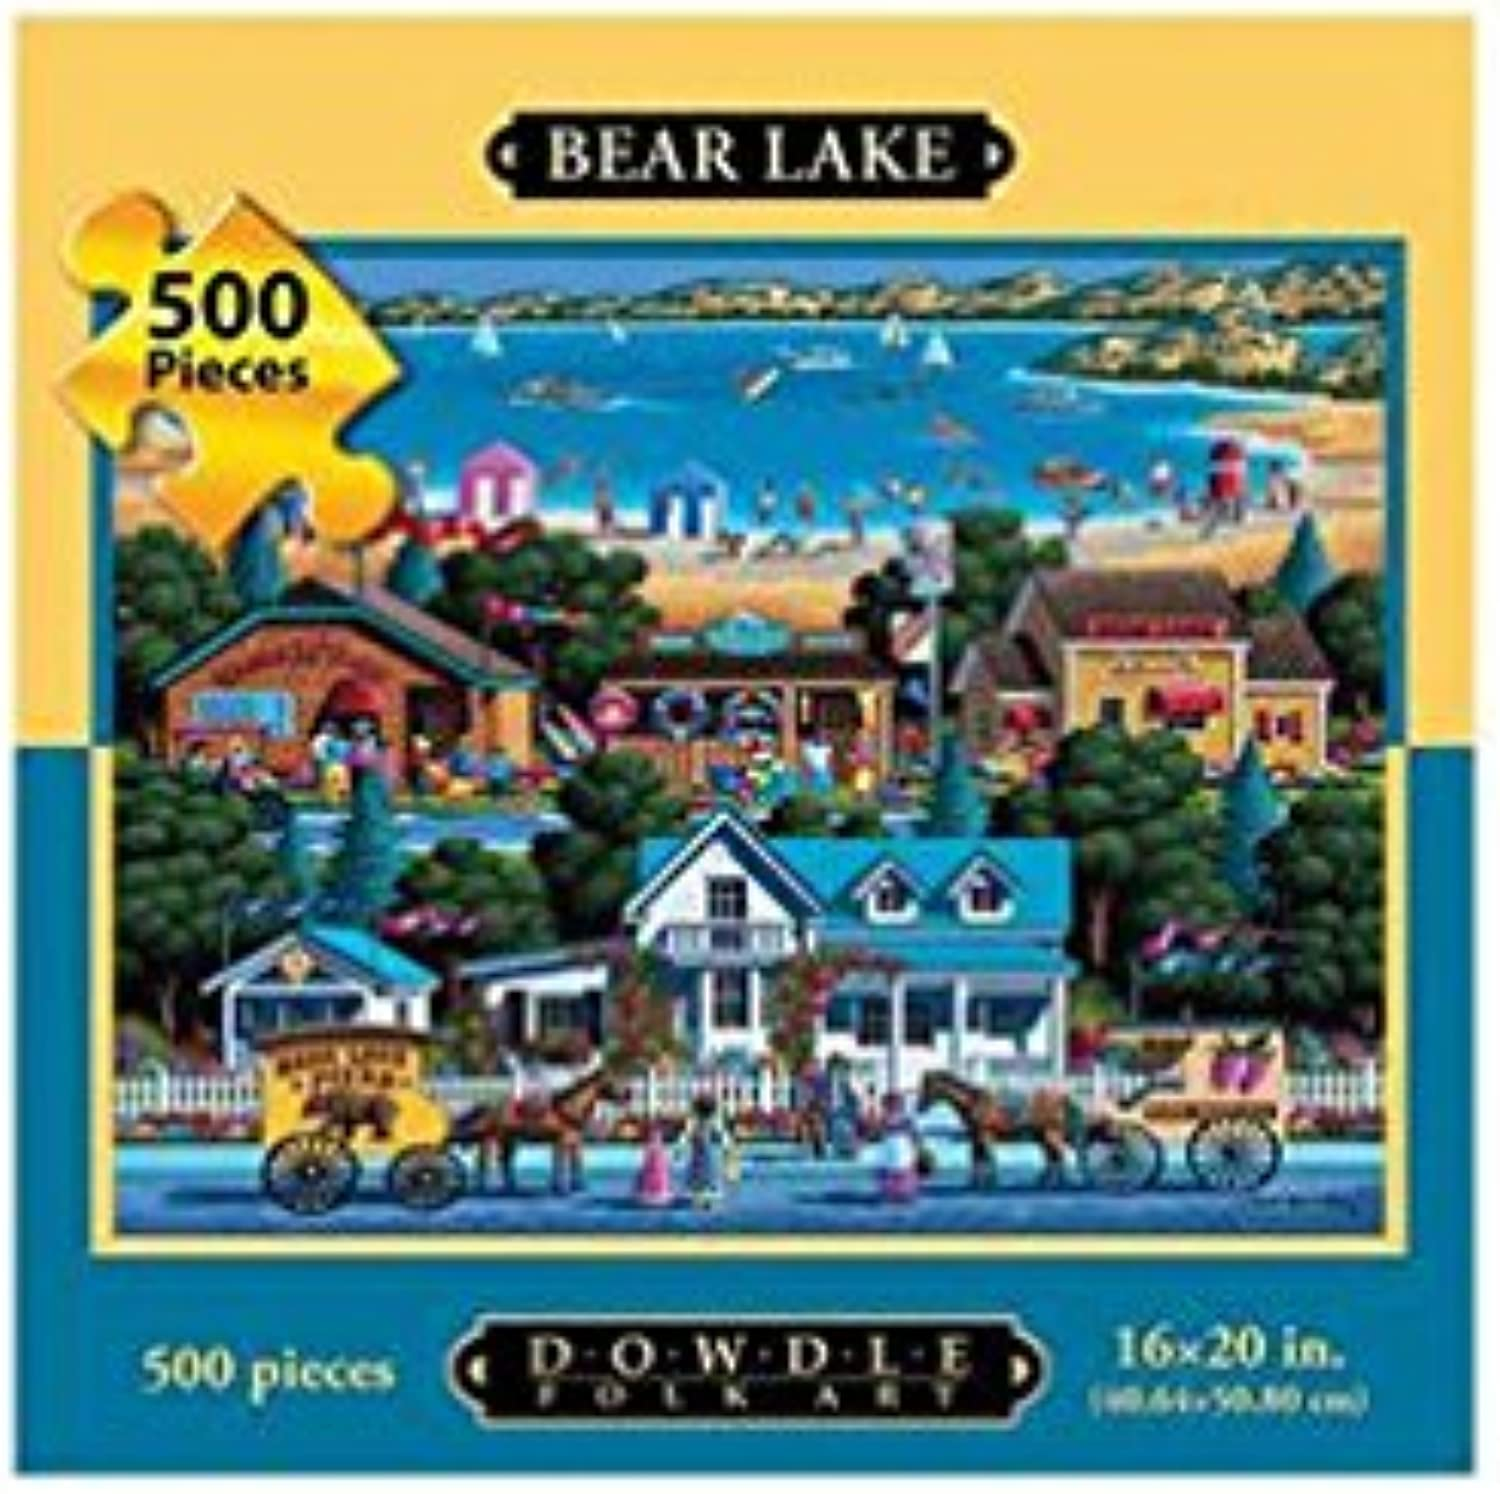 Dowdle Folk Art Dowdle Bear Lake 500 Piece Puzzle